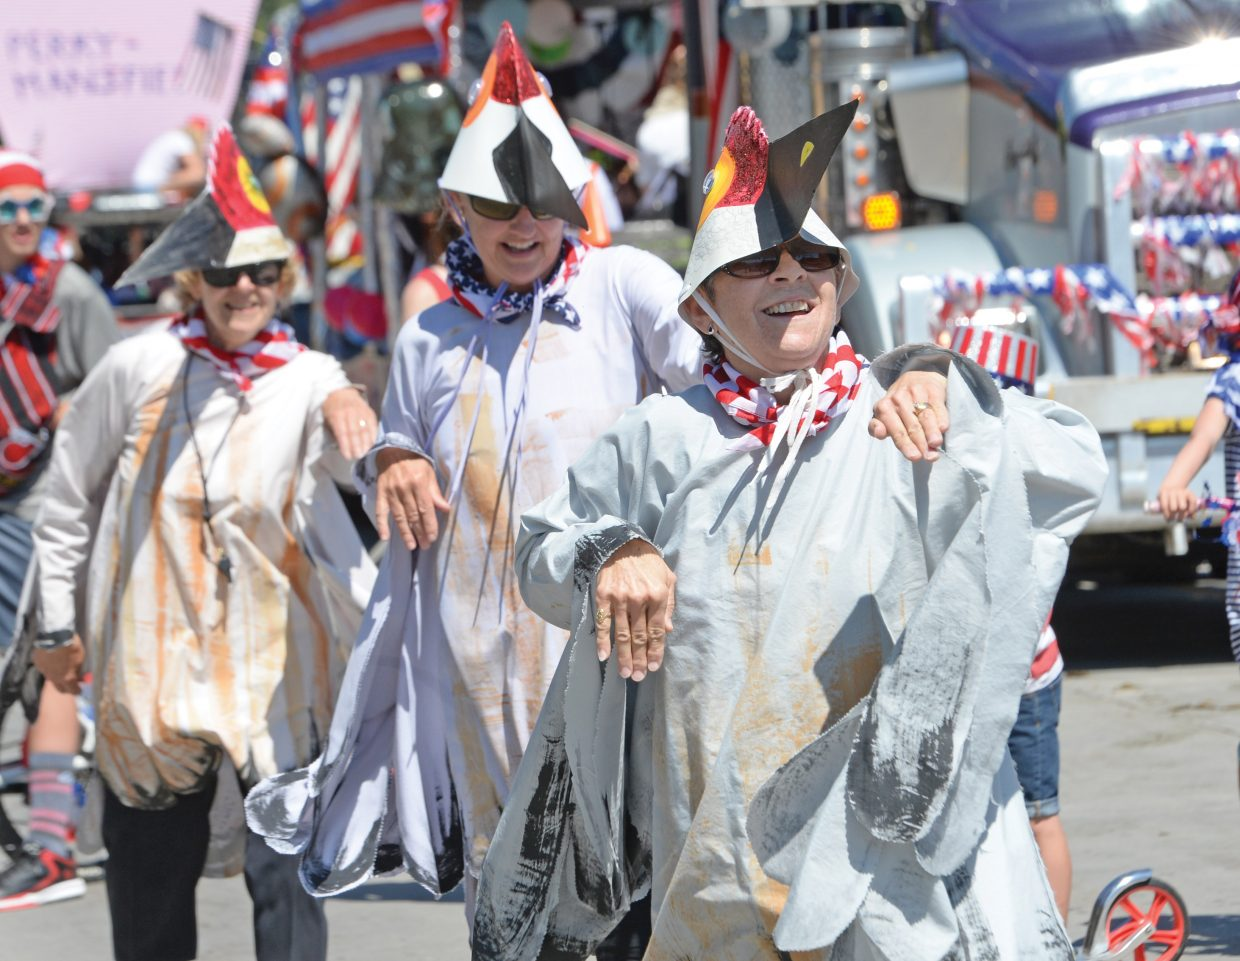 Barb Hughes dressed as a crane and did a dance during a past Fourth of July Parade.